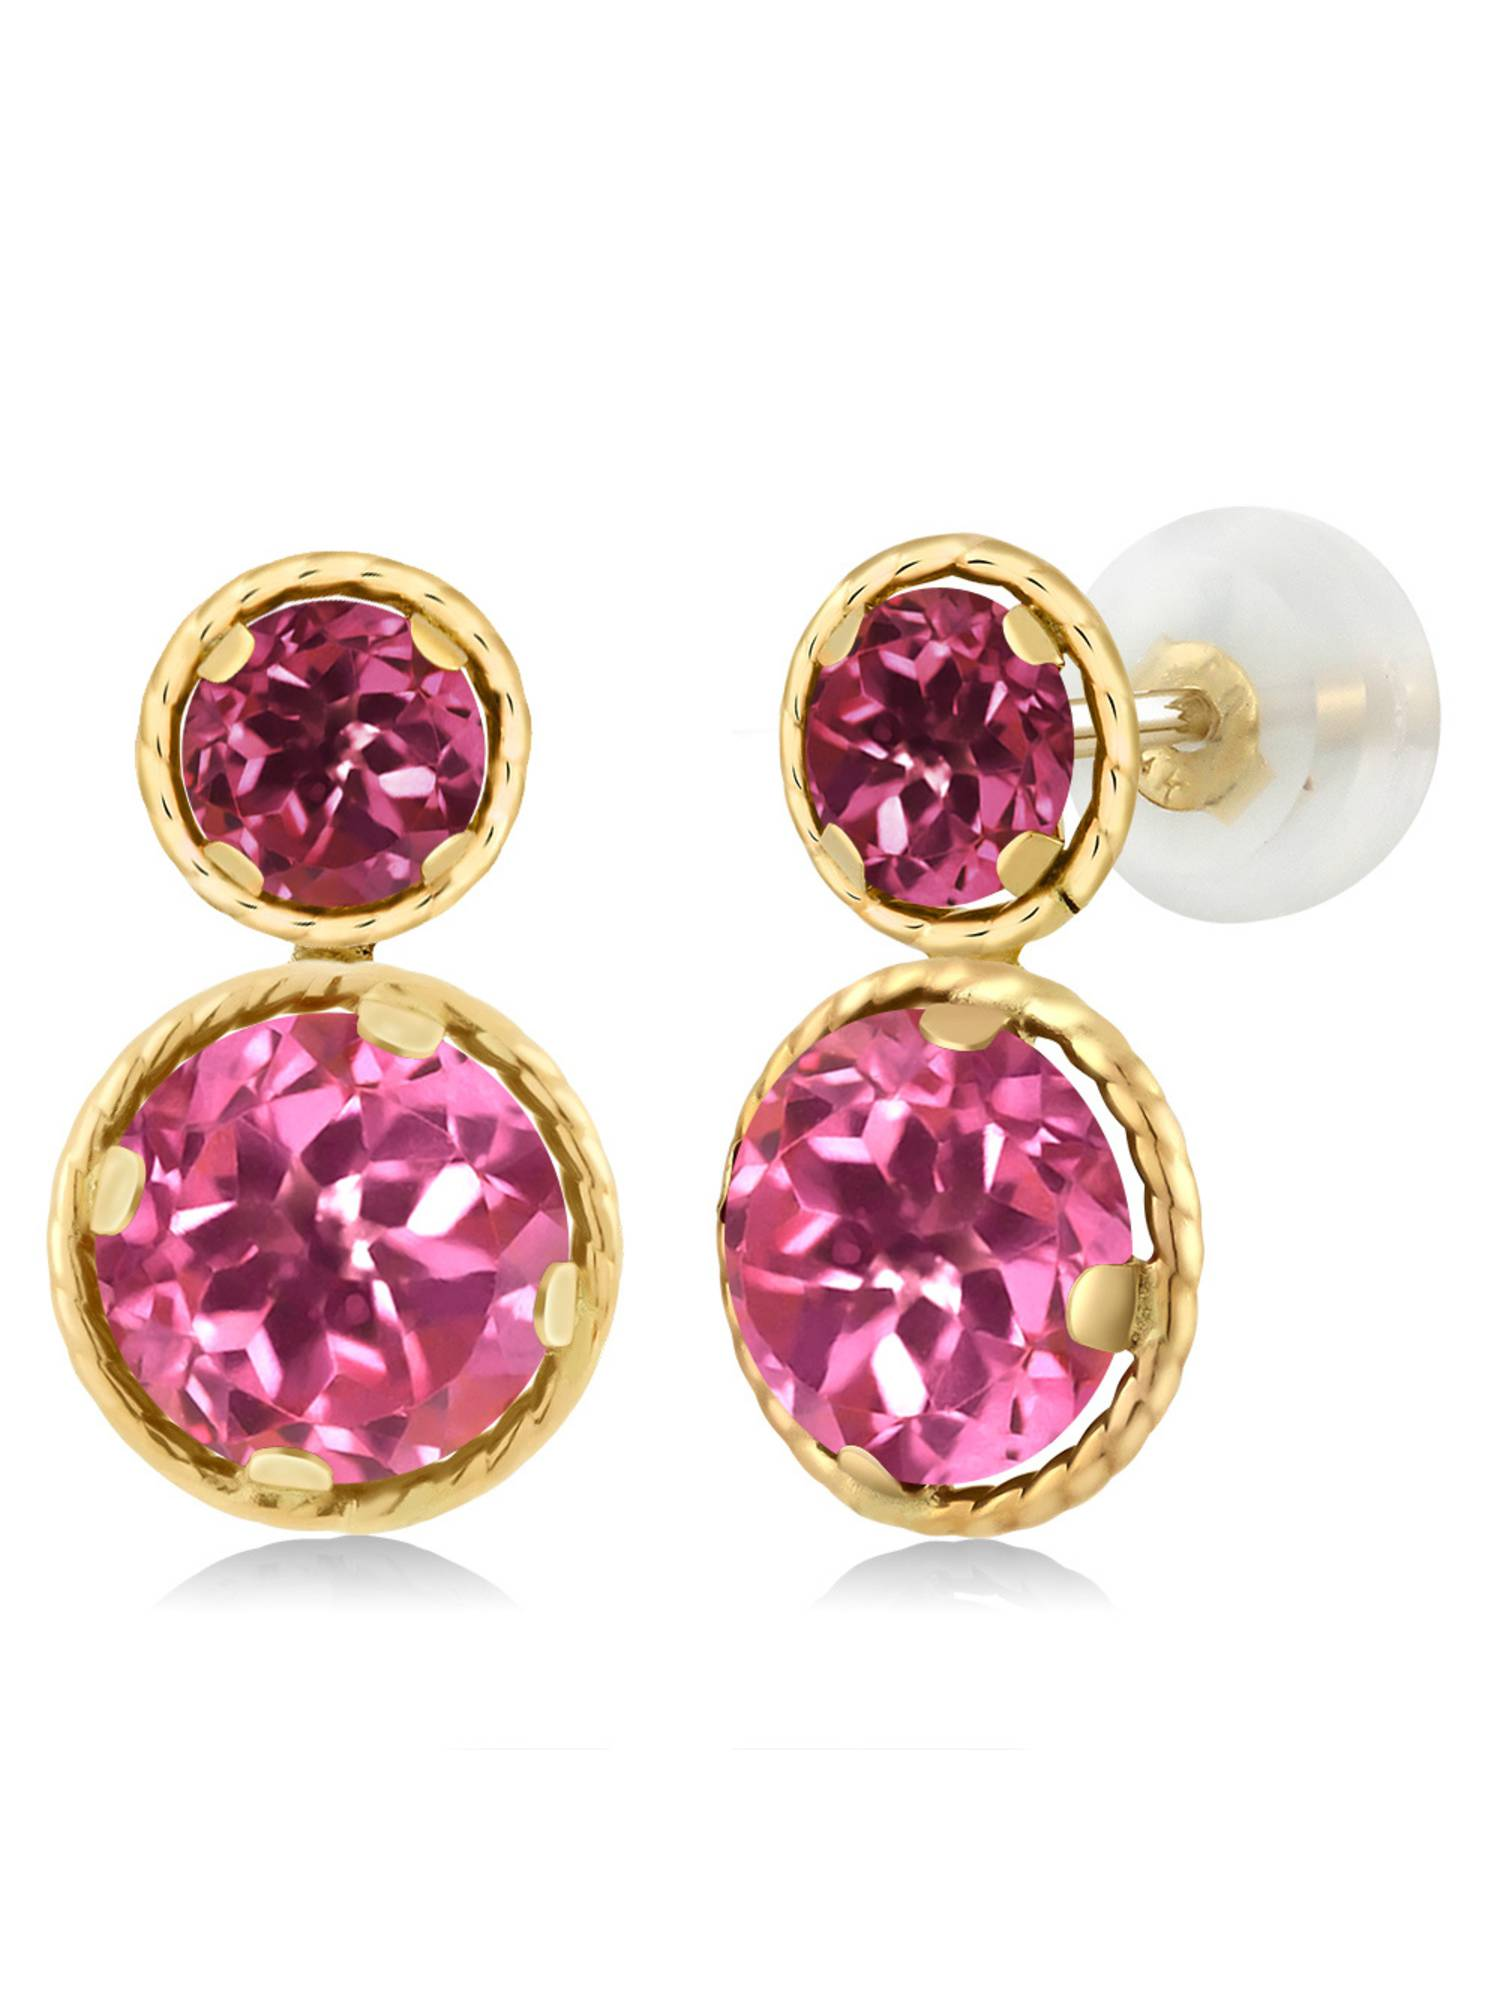 4.10 Ct Round Pink Mystic Topaz Pink Tourmaline 14K Yellow Gold Earrings by